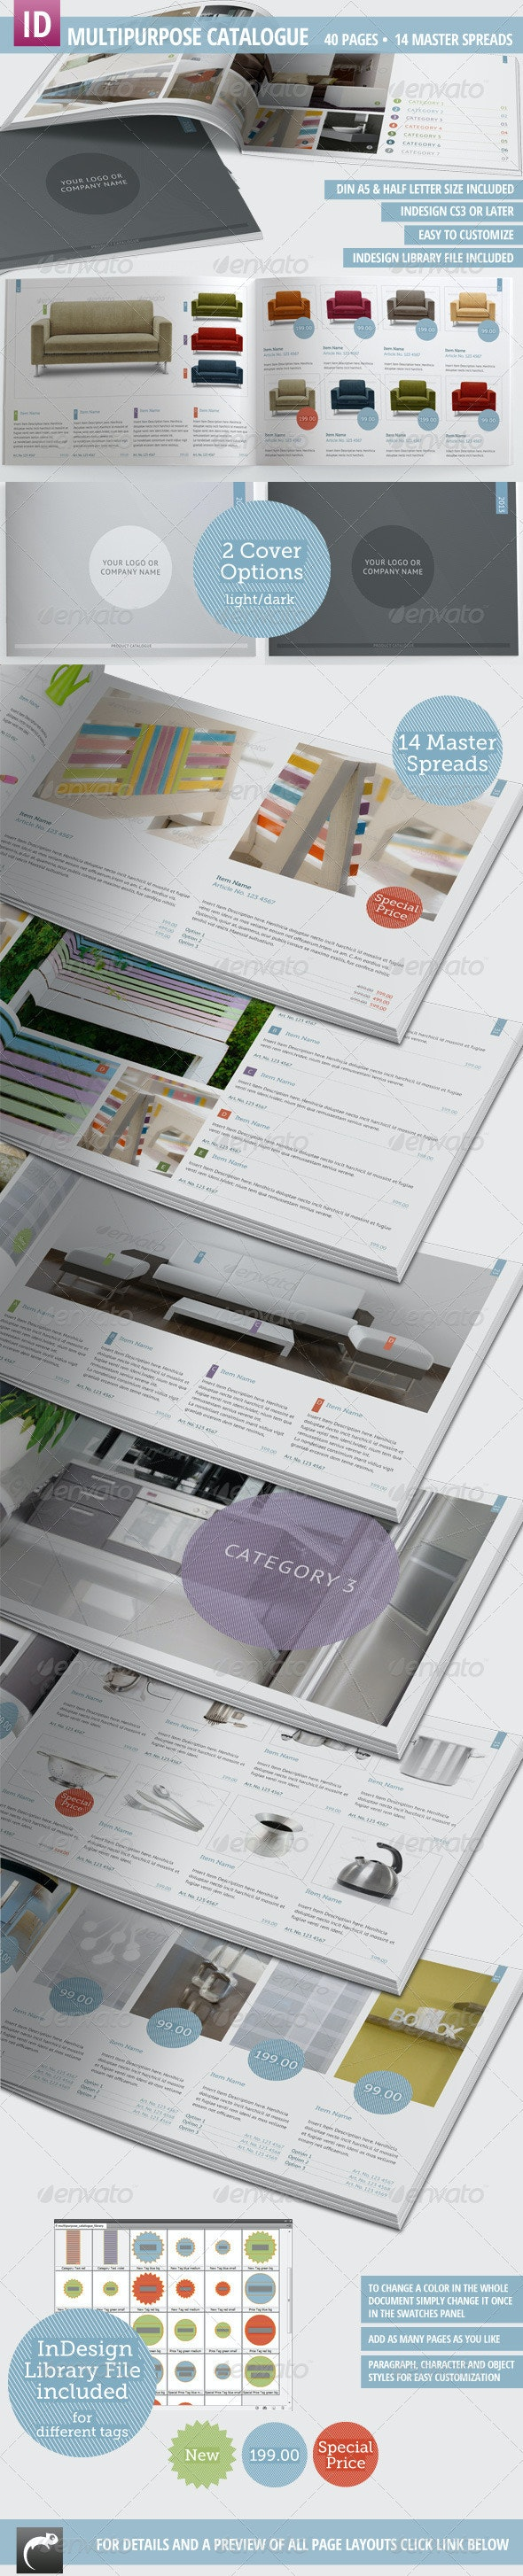 Multipurpose Product Catalogue - 40 Pages - Catalogs Brochures